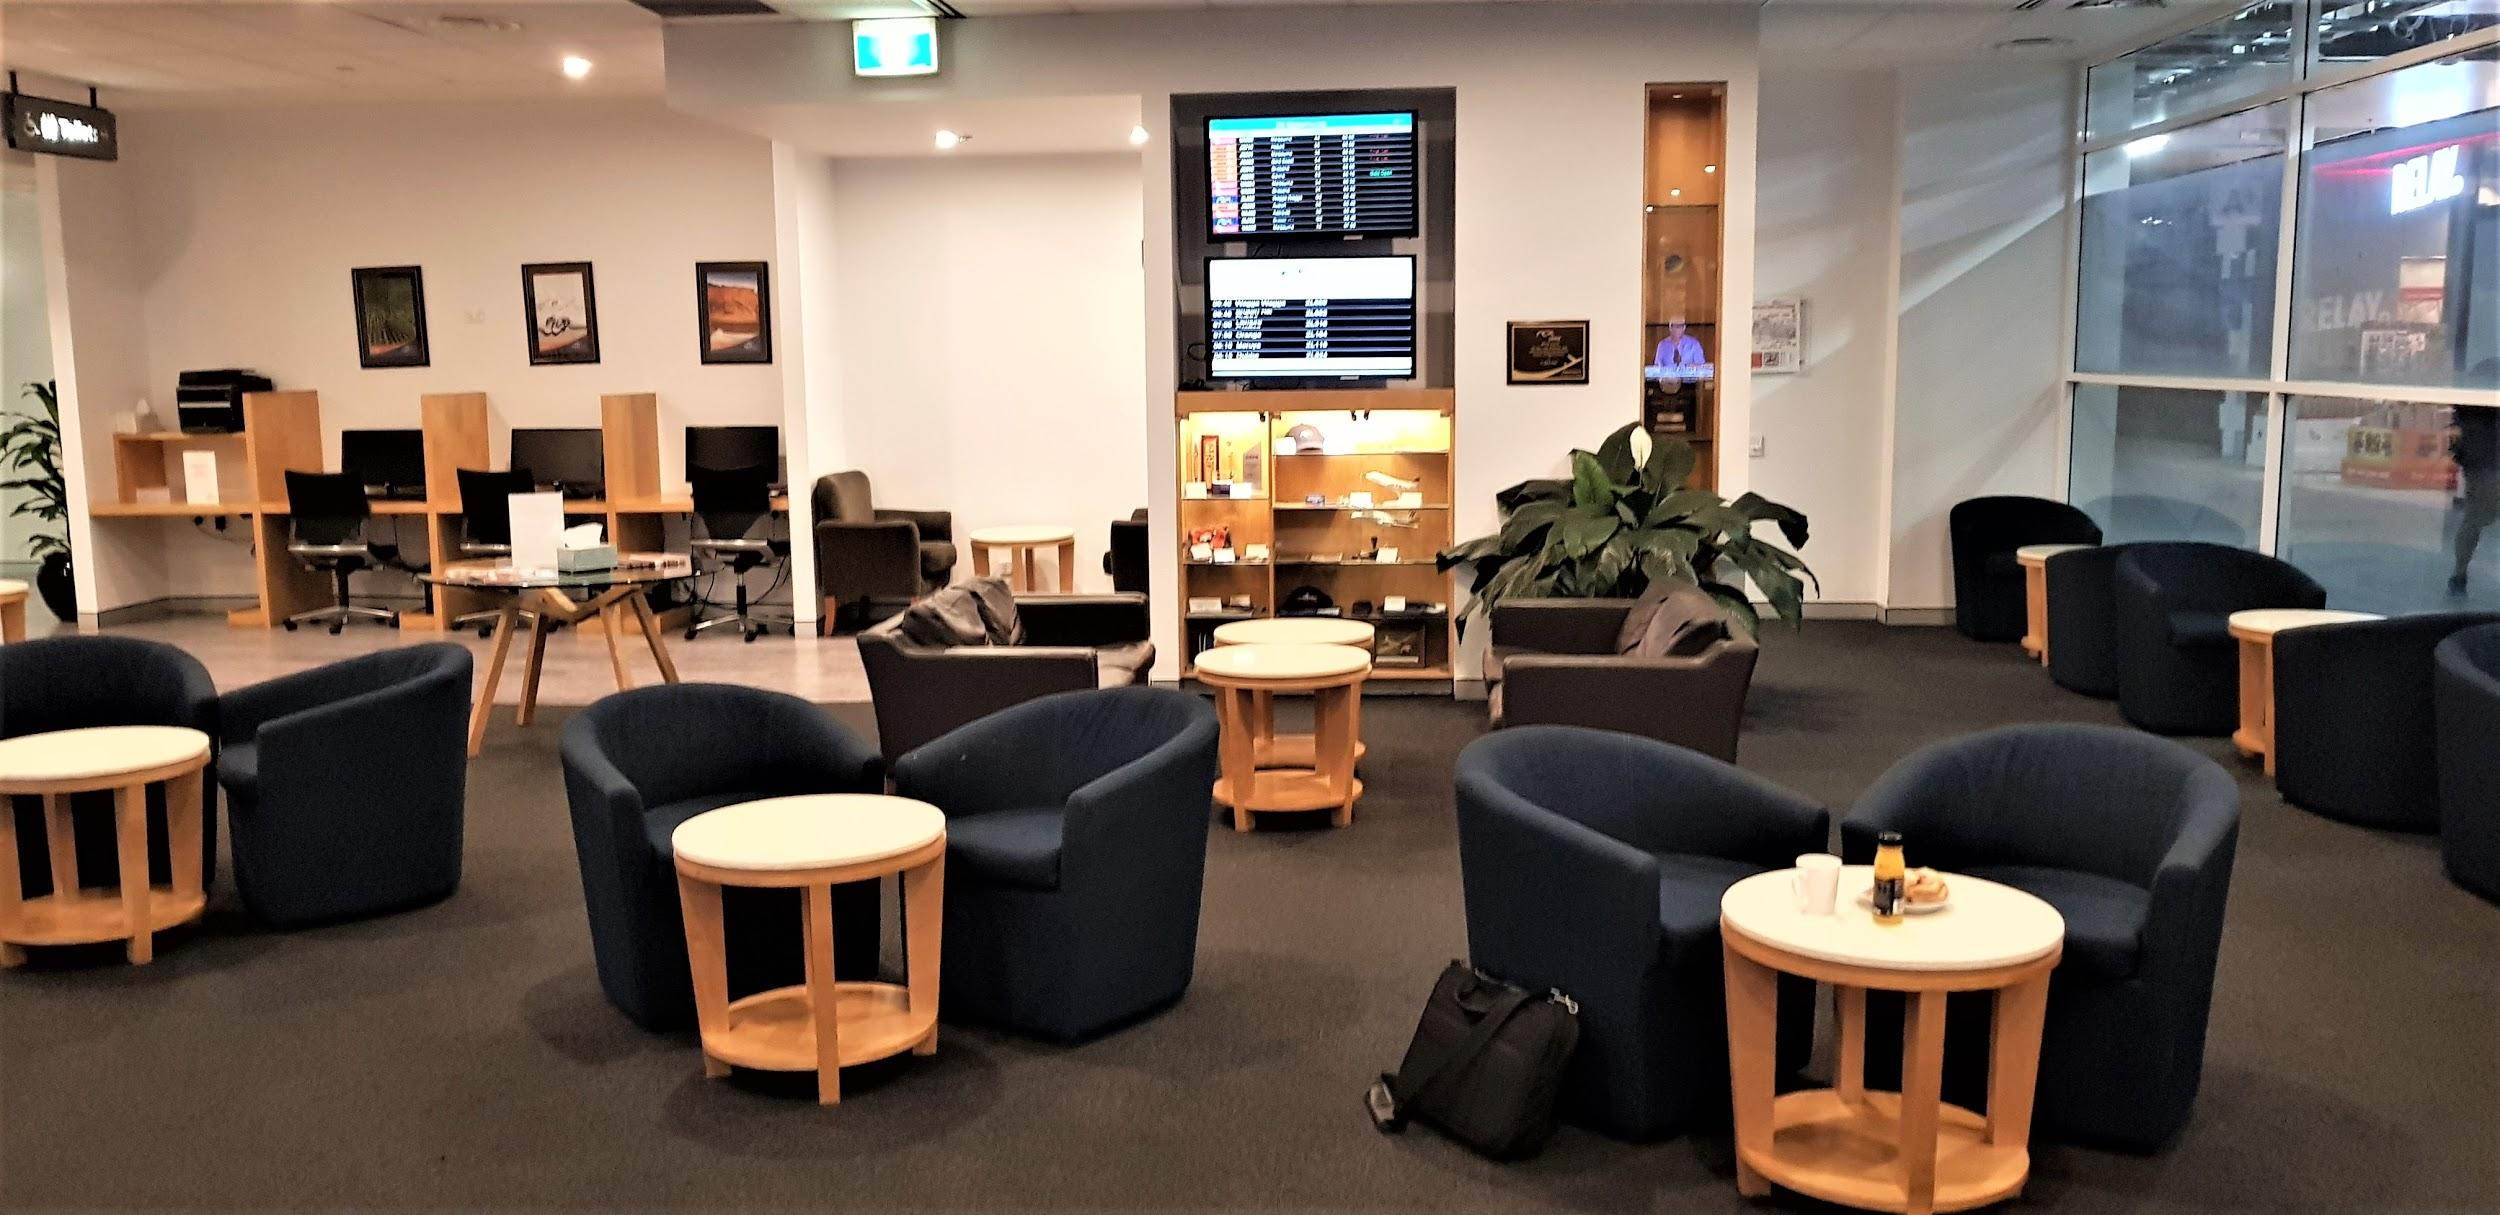 Brilliant Rex Lounge Sydney Overview And Access Options Point Hacks Nz Theyellowbook Wood Chair Design Ideas Theyellowbookinfo